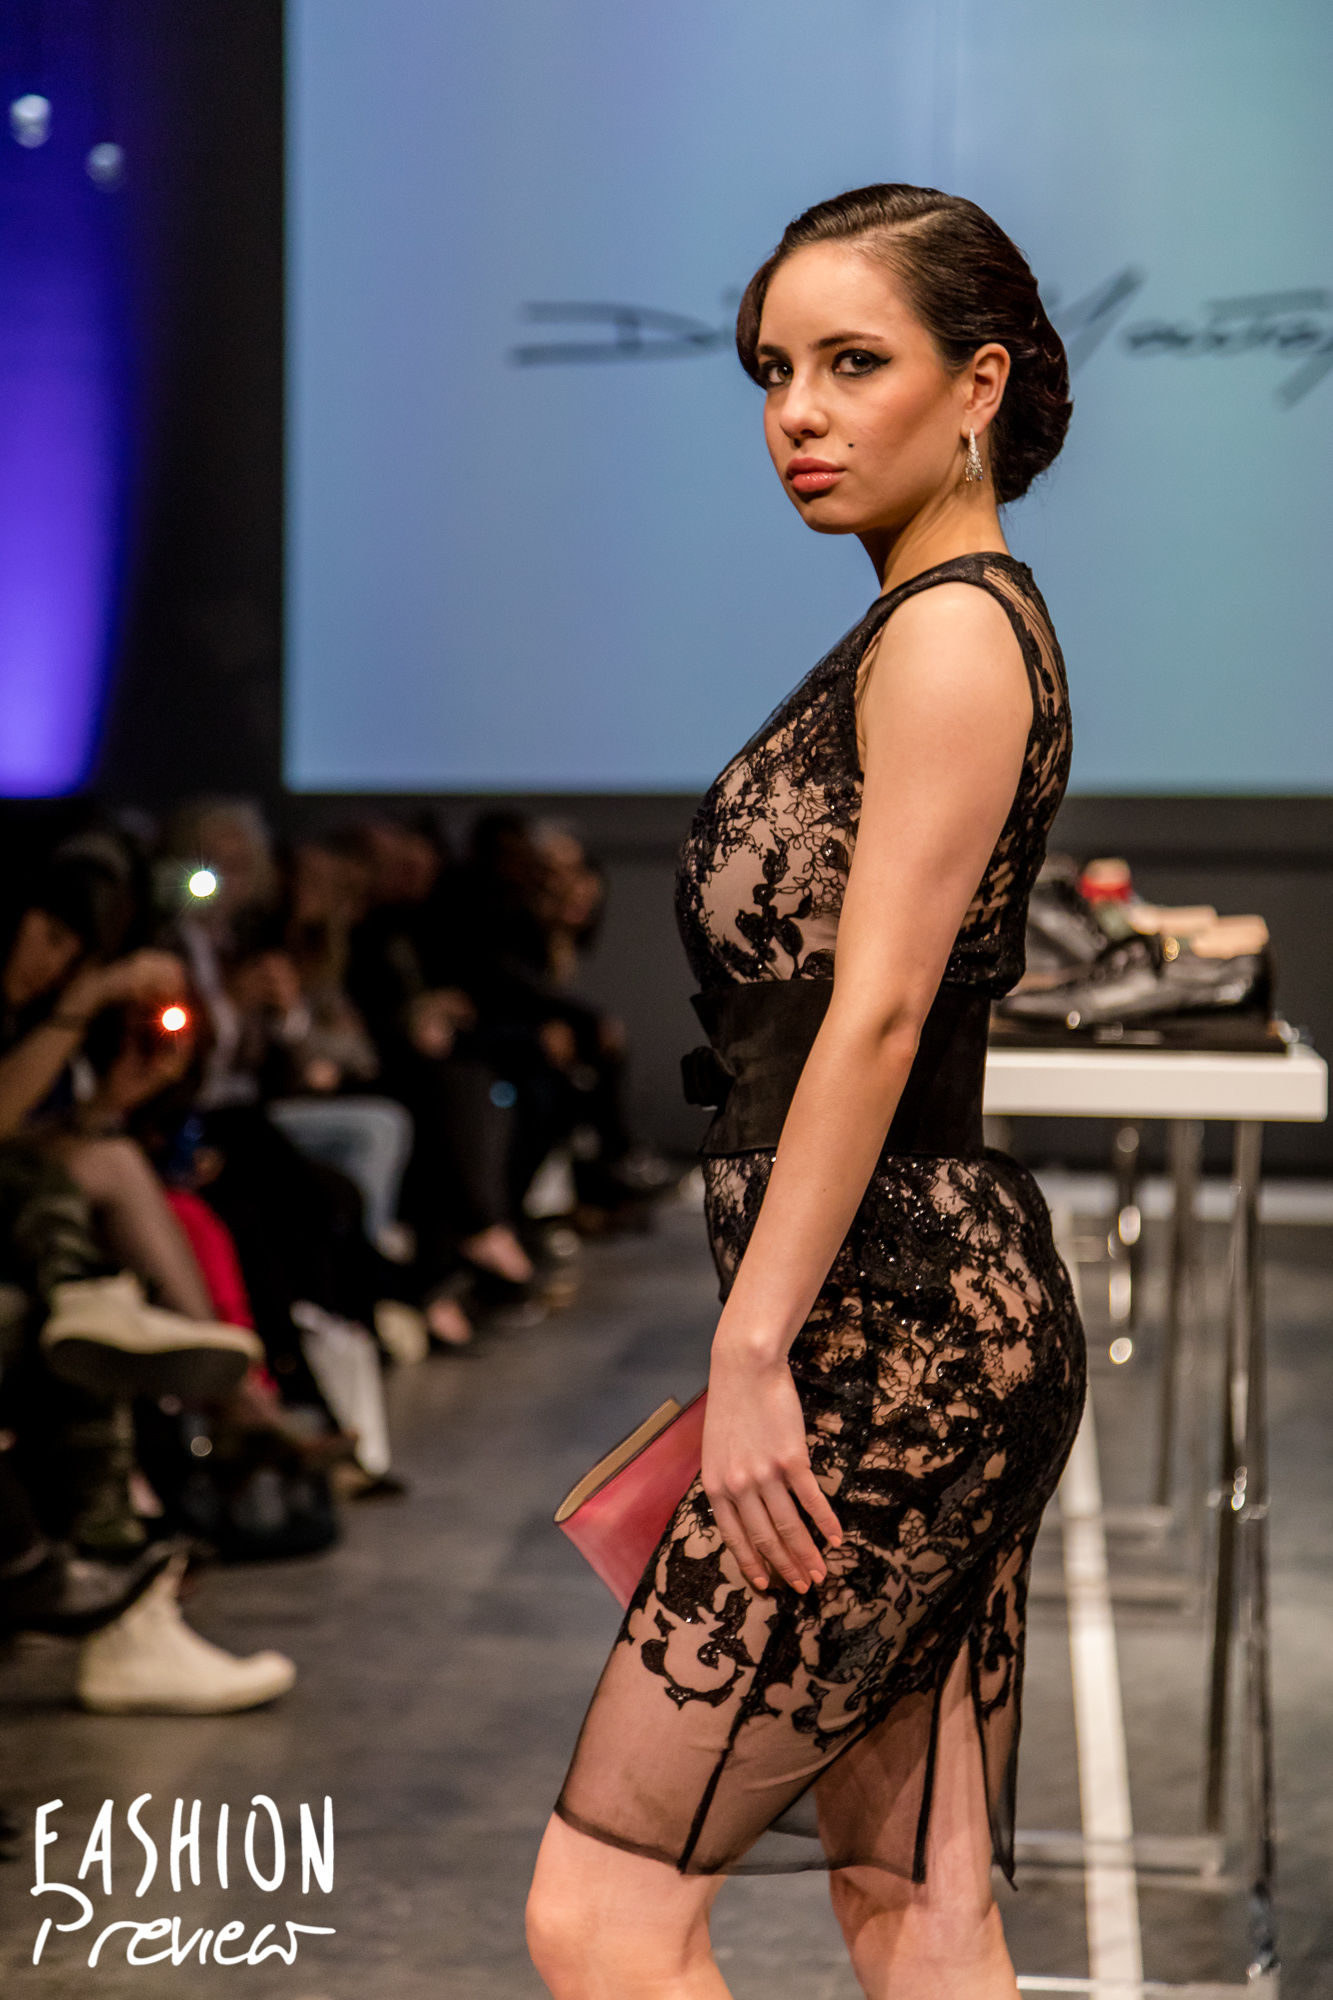 Fashion Preview 9 - Diego Montefusco-31.jpg